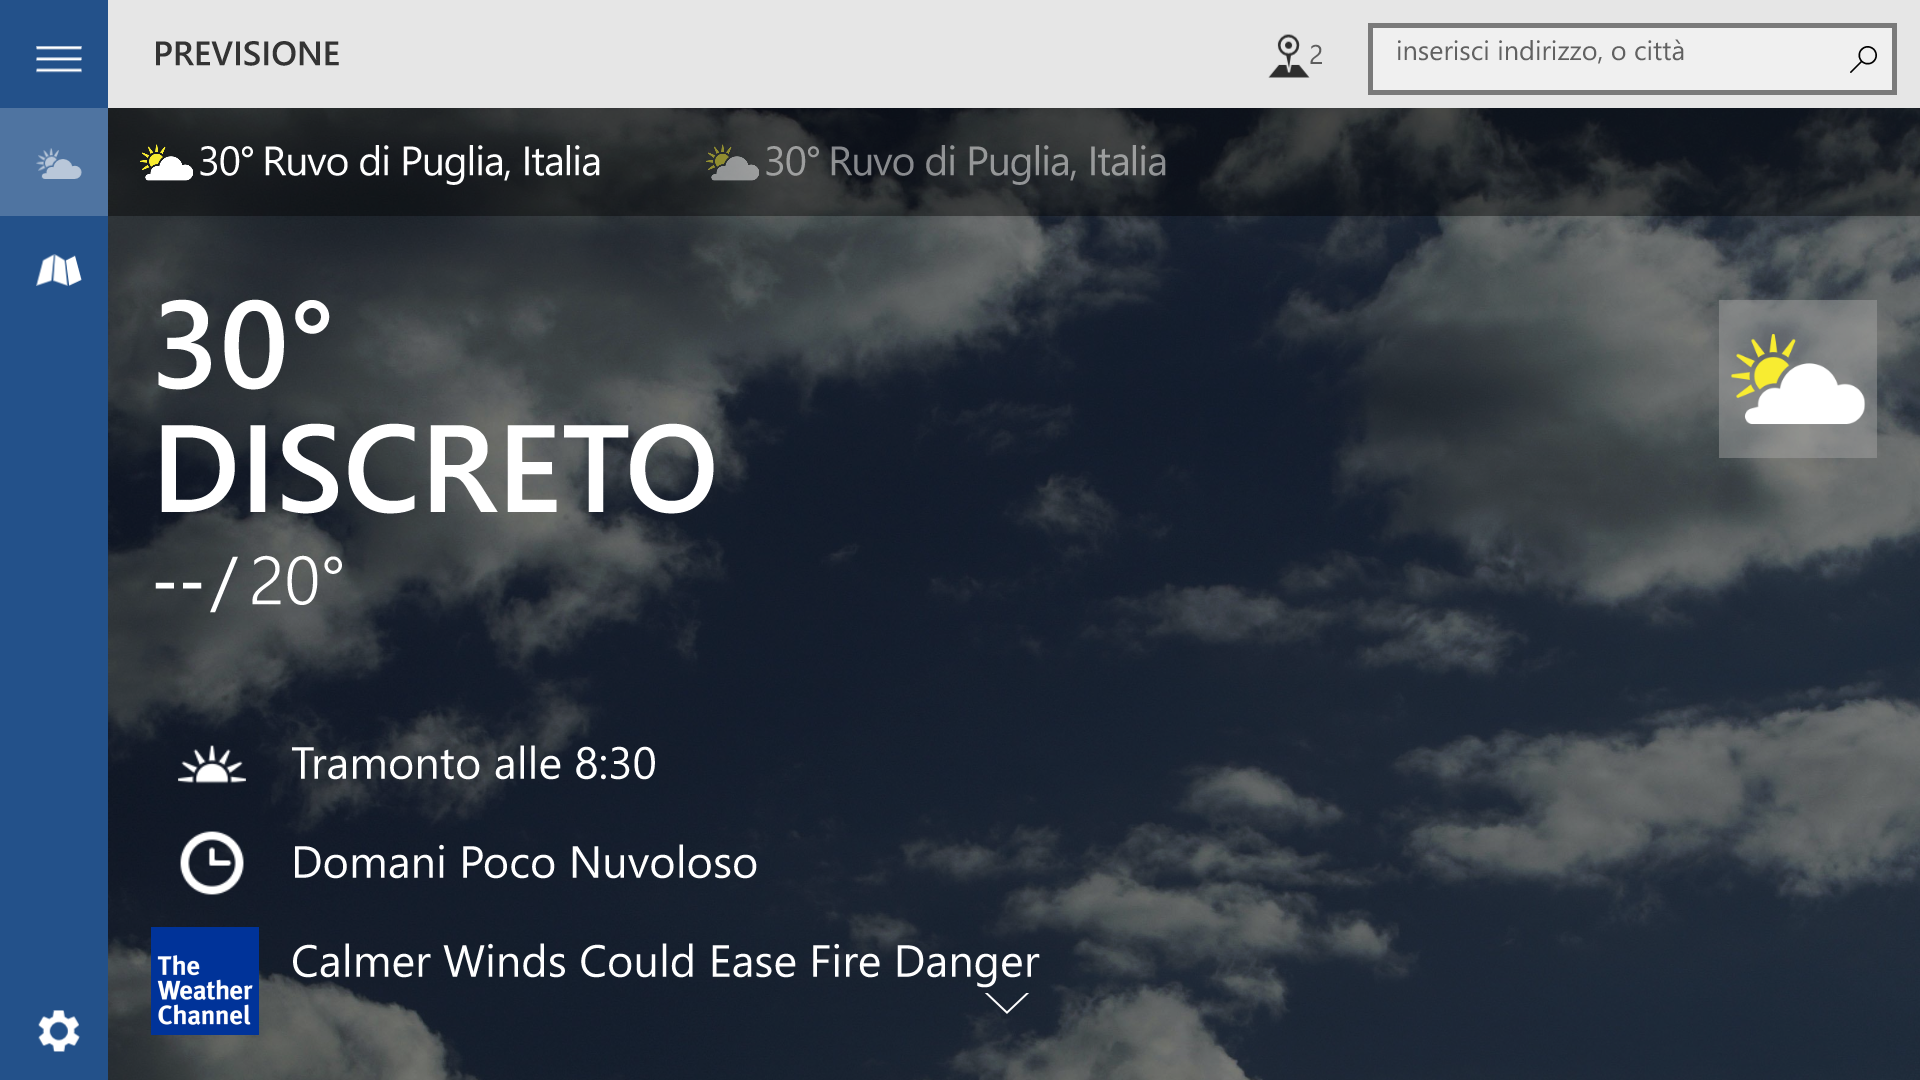 Le Migliori App Del Meteo Per Windows 10 E Windows 10 Mobile